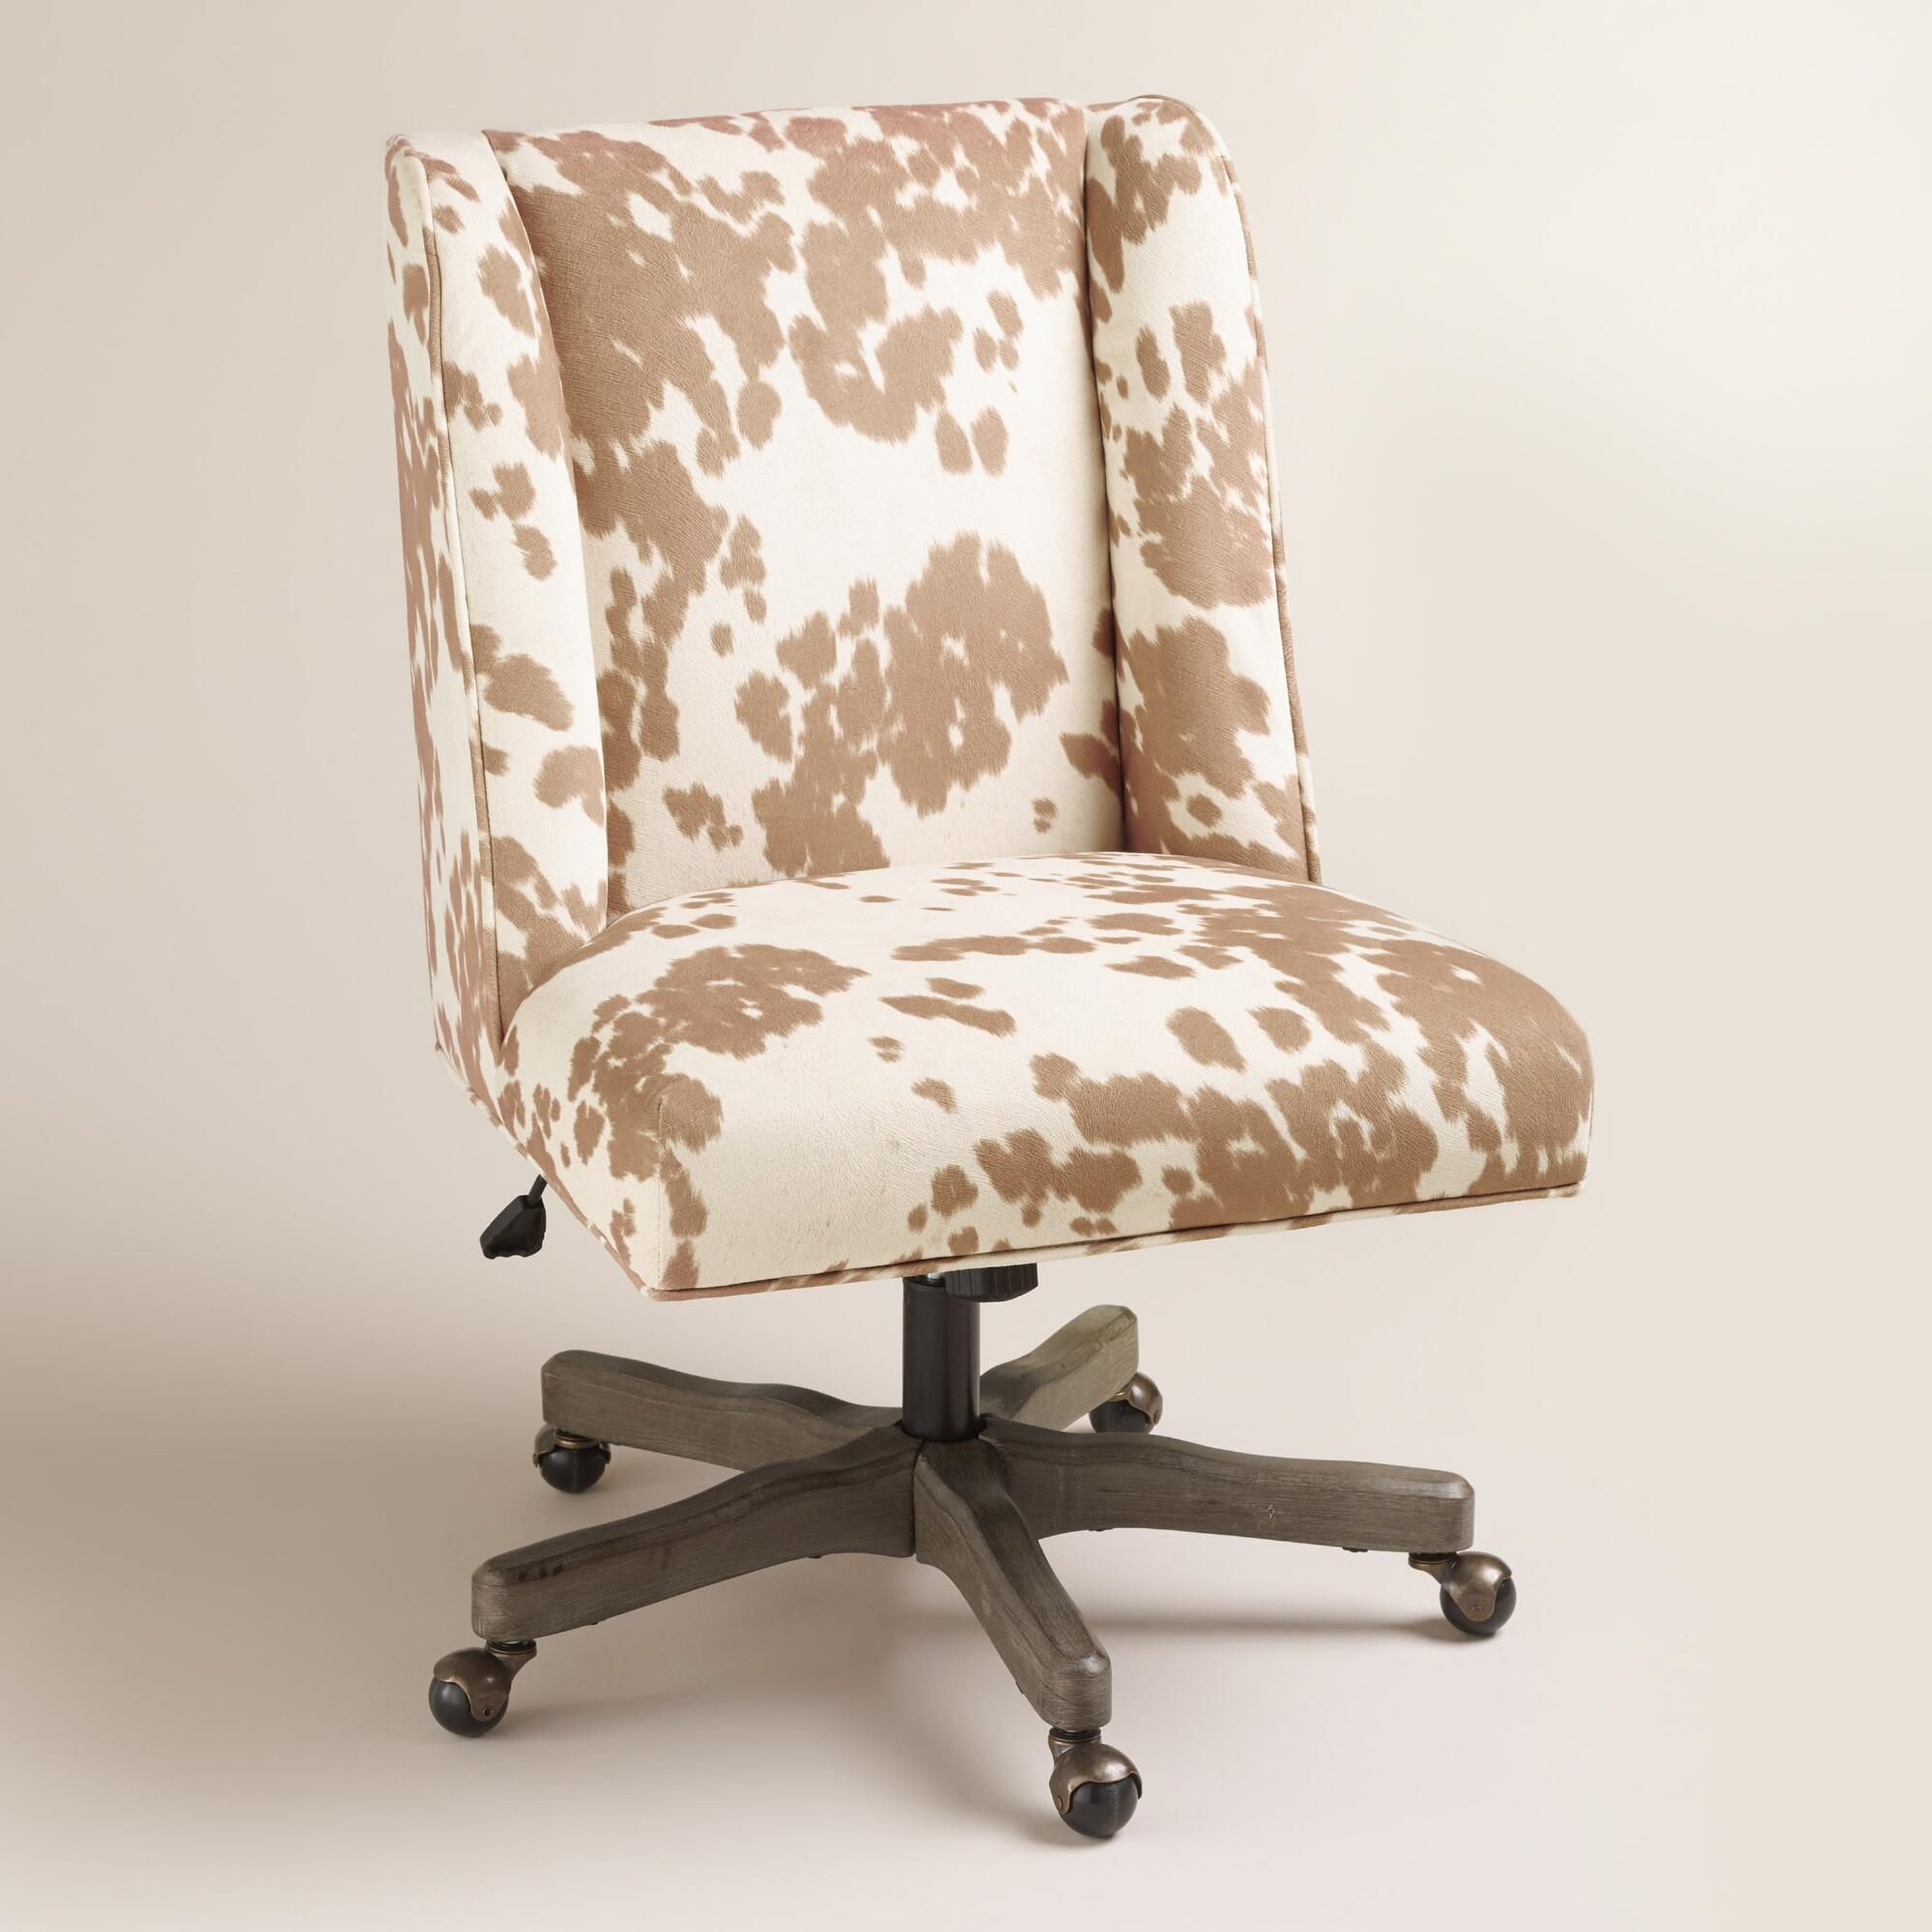 With An Updated Wingback Profile And Tan White Cow Print Fabric Upholstery Our Comfortable Chair Is Eclectic Home Office Seating Solution